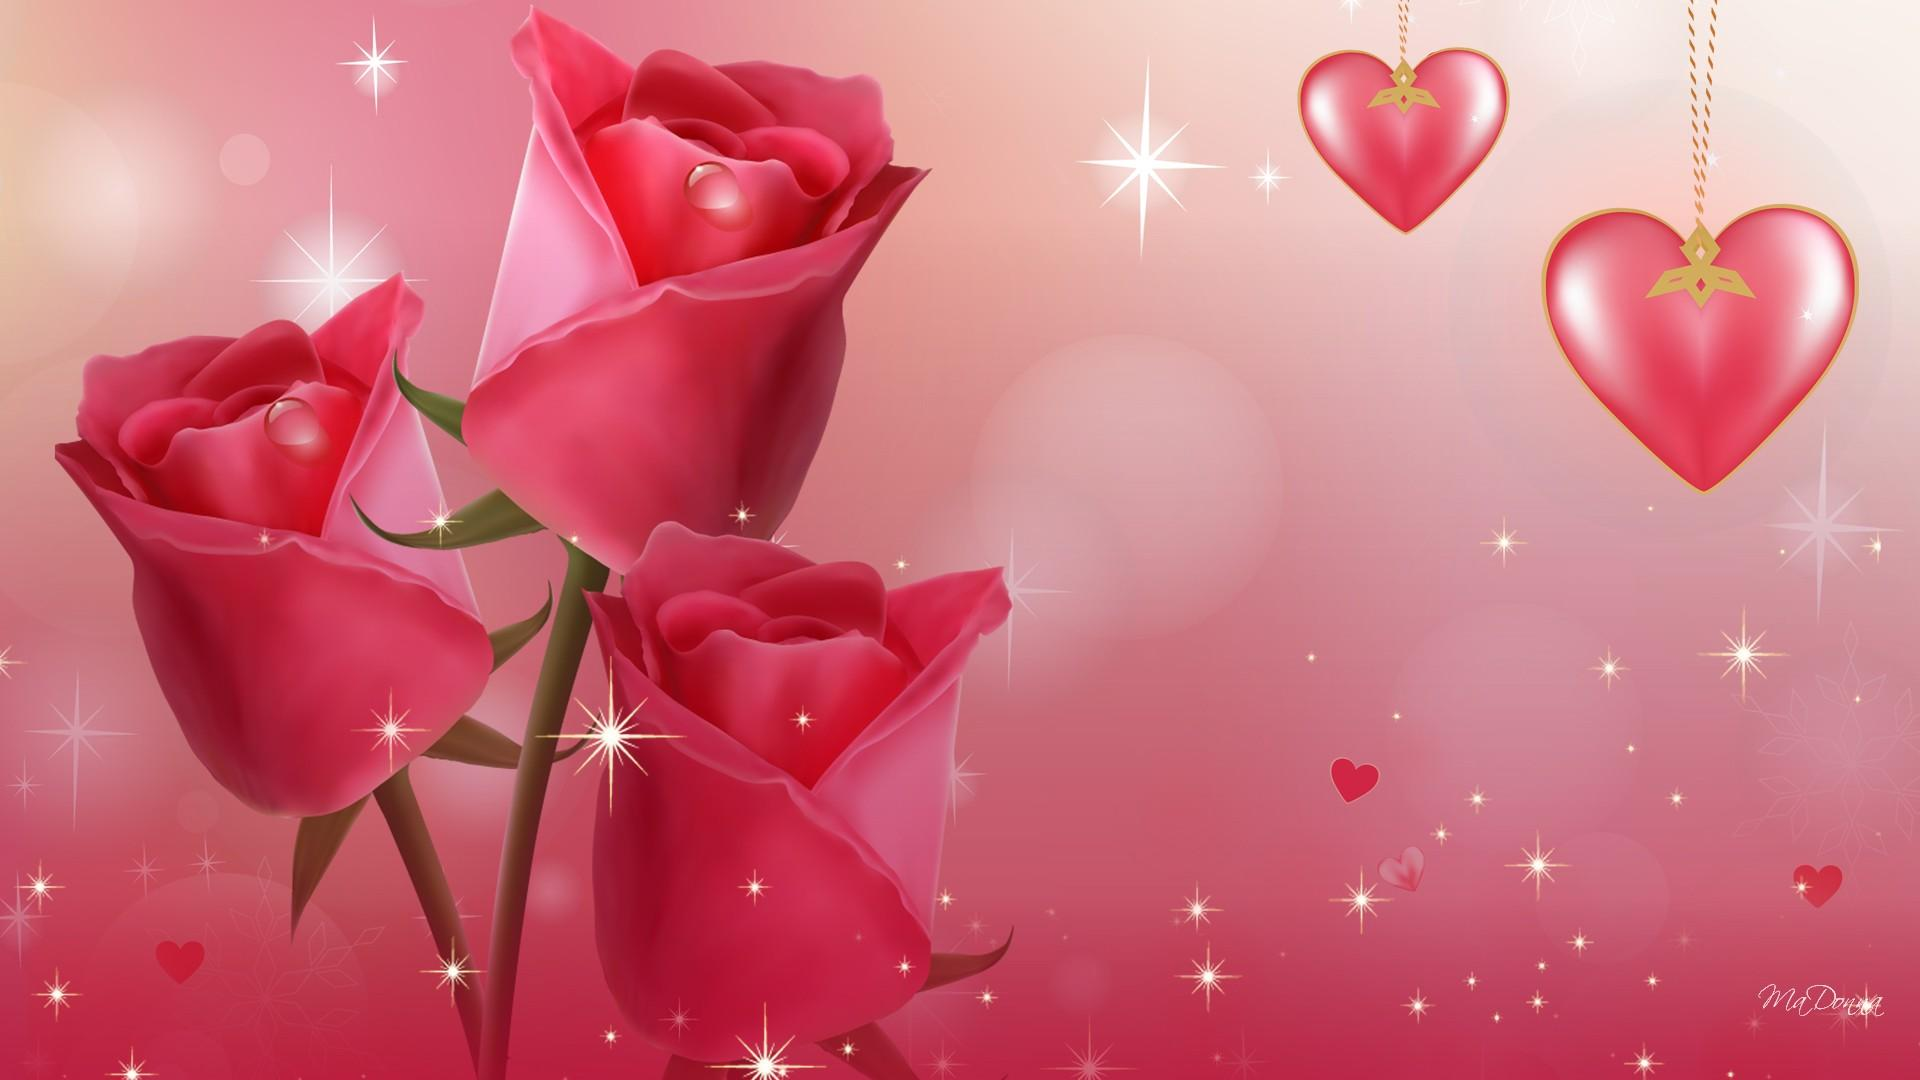 Beautiful Love Wallpaper Free : Beautiful Love Wallpaper HD - WallpaperSafari